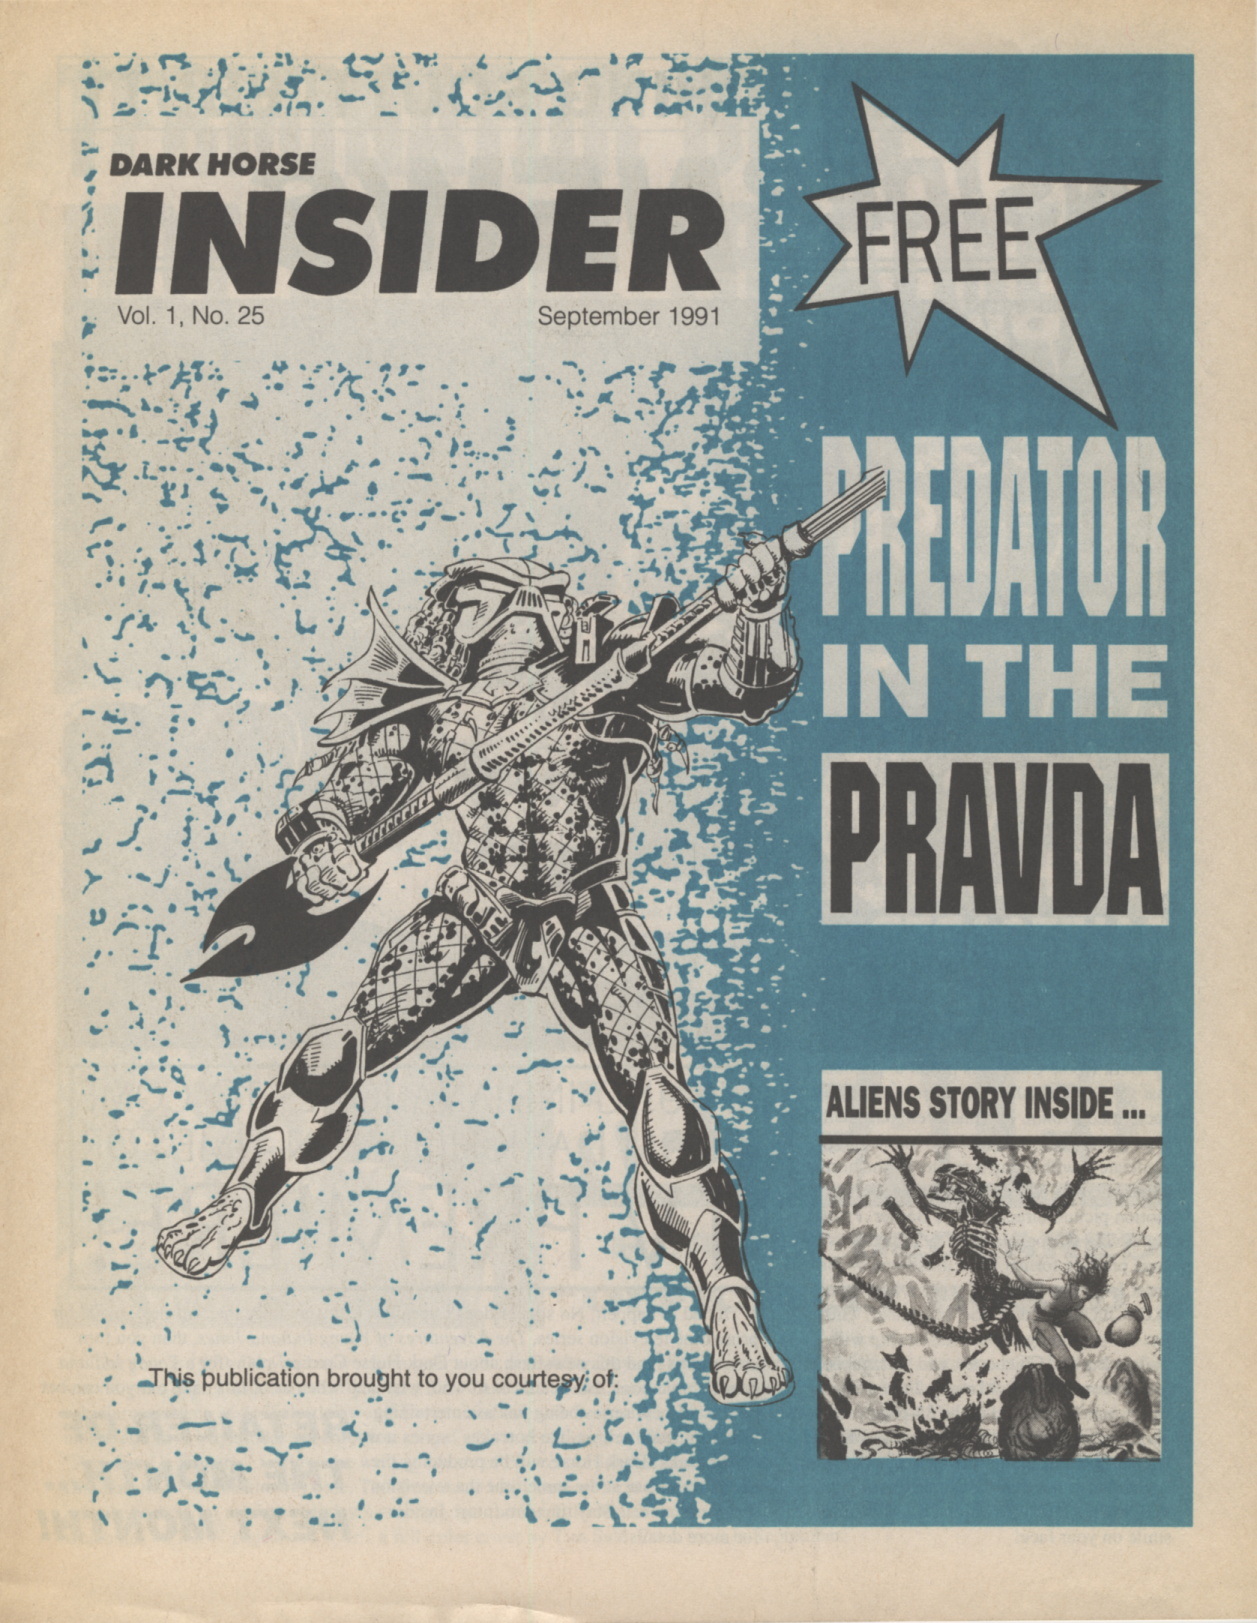 Time Capsule: Dark Horse Insider September 1991